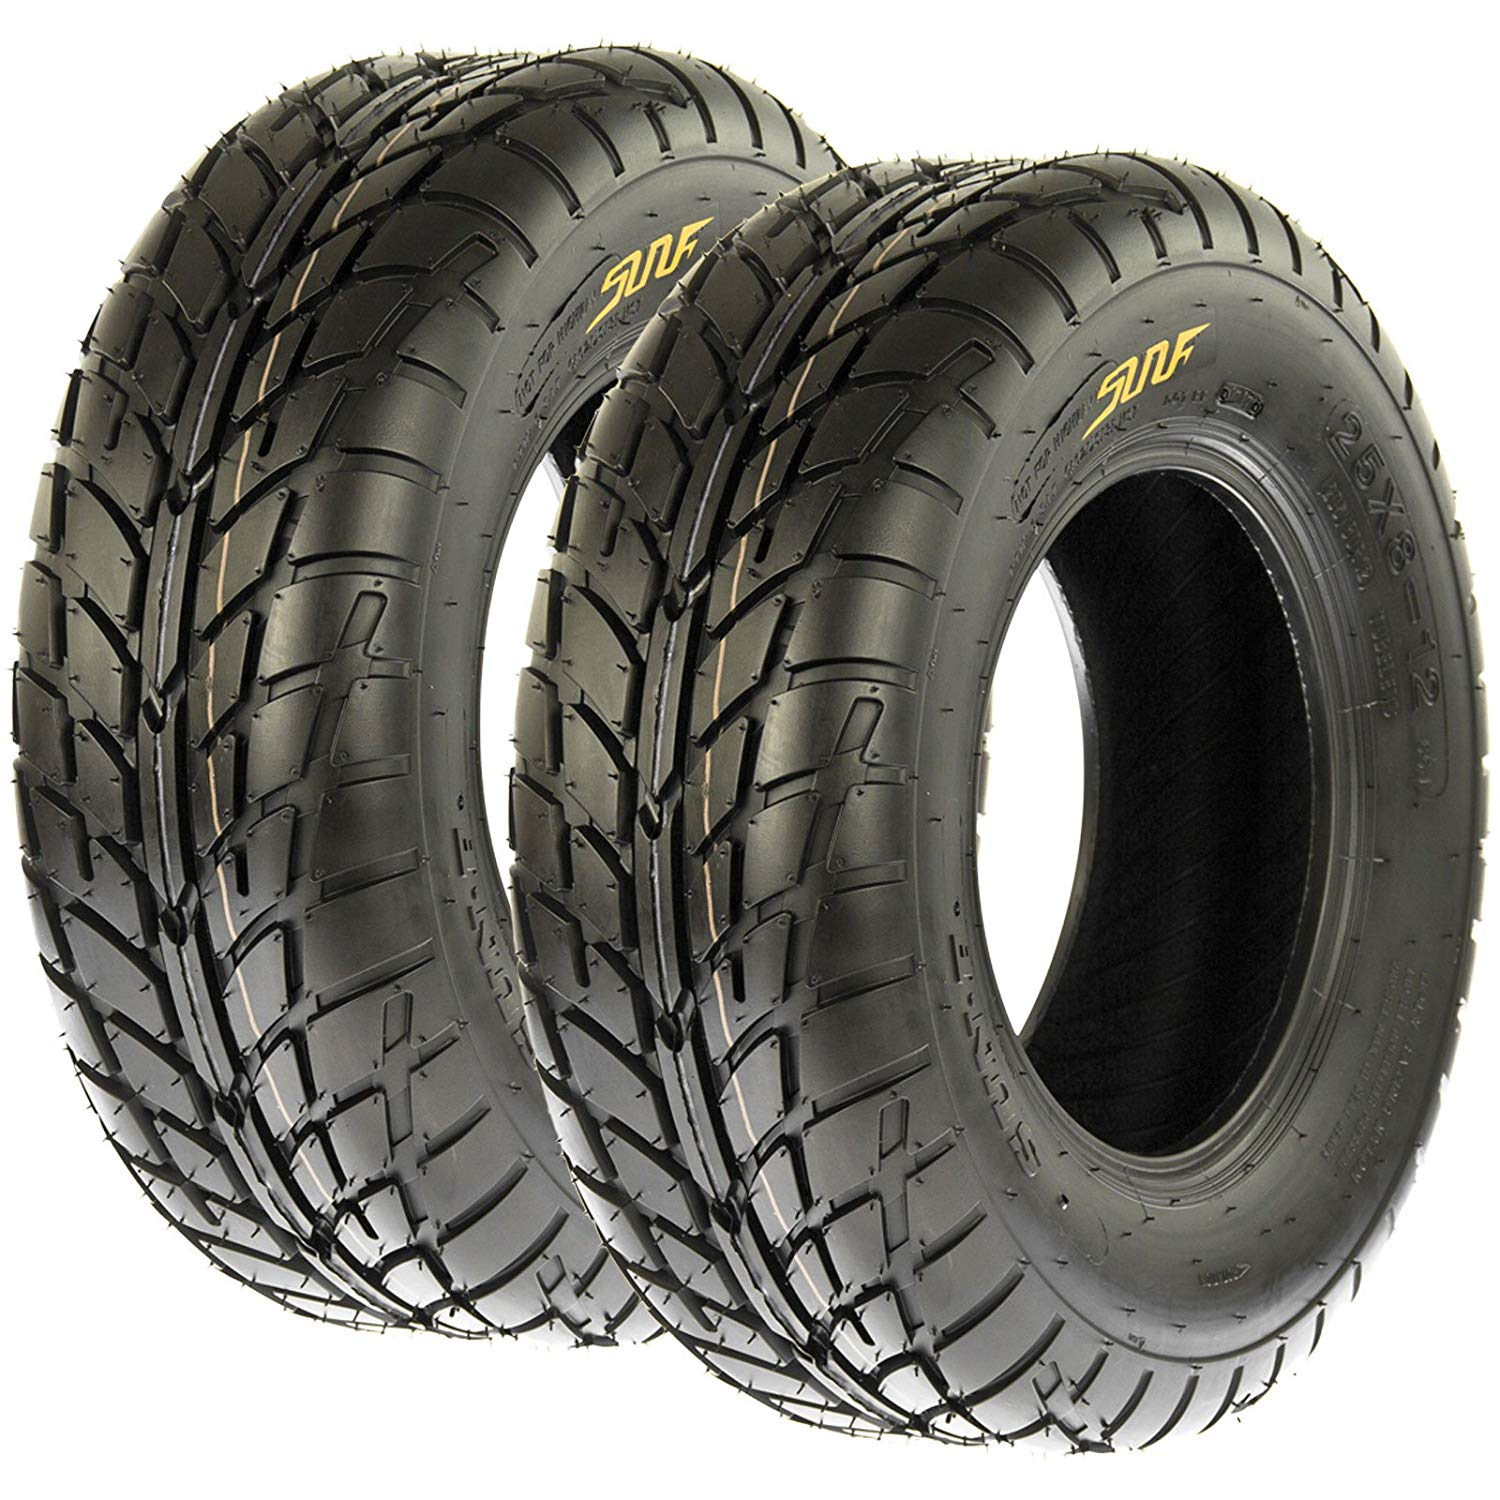 Cheap Dirt Track Tires, find Dirt Track Tires deals on line at